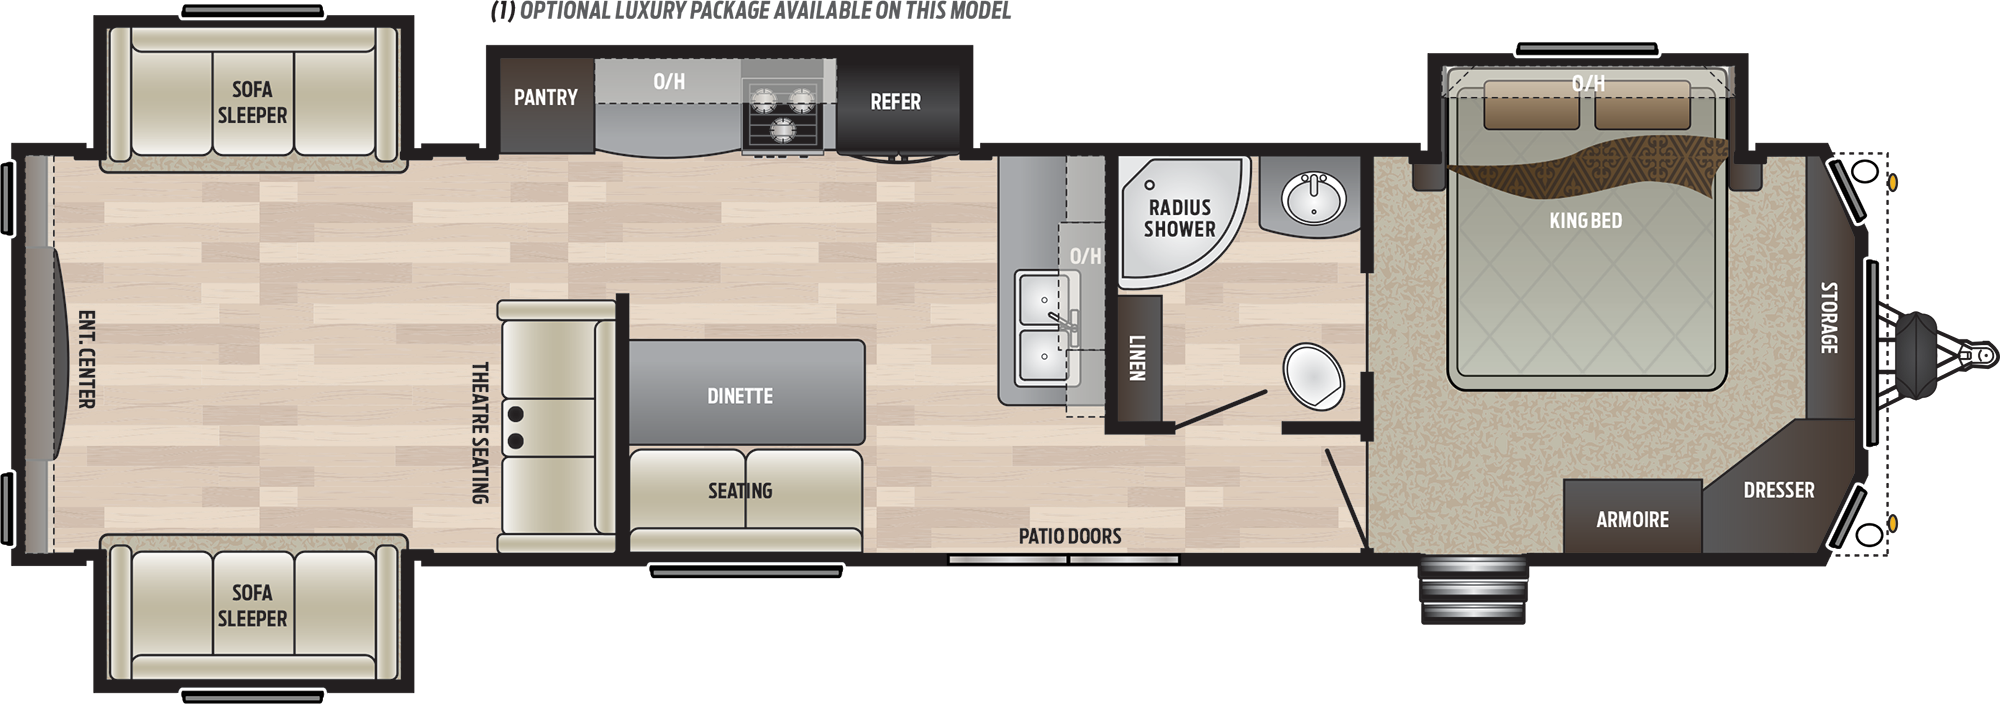 2019 KEYSTONE RETREAT 39RDEN (couples) Floorplan